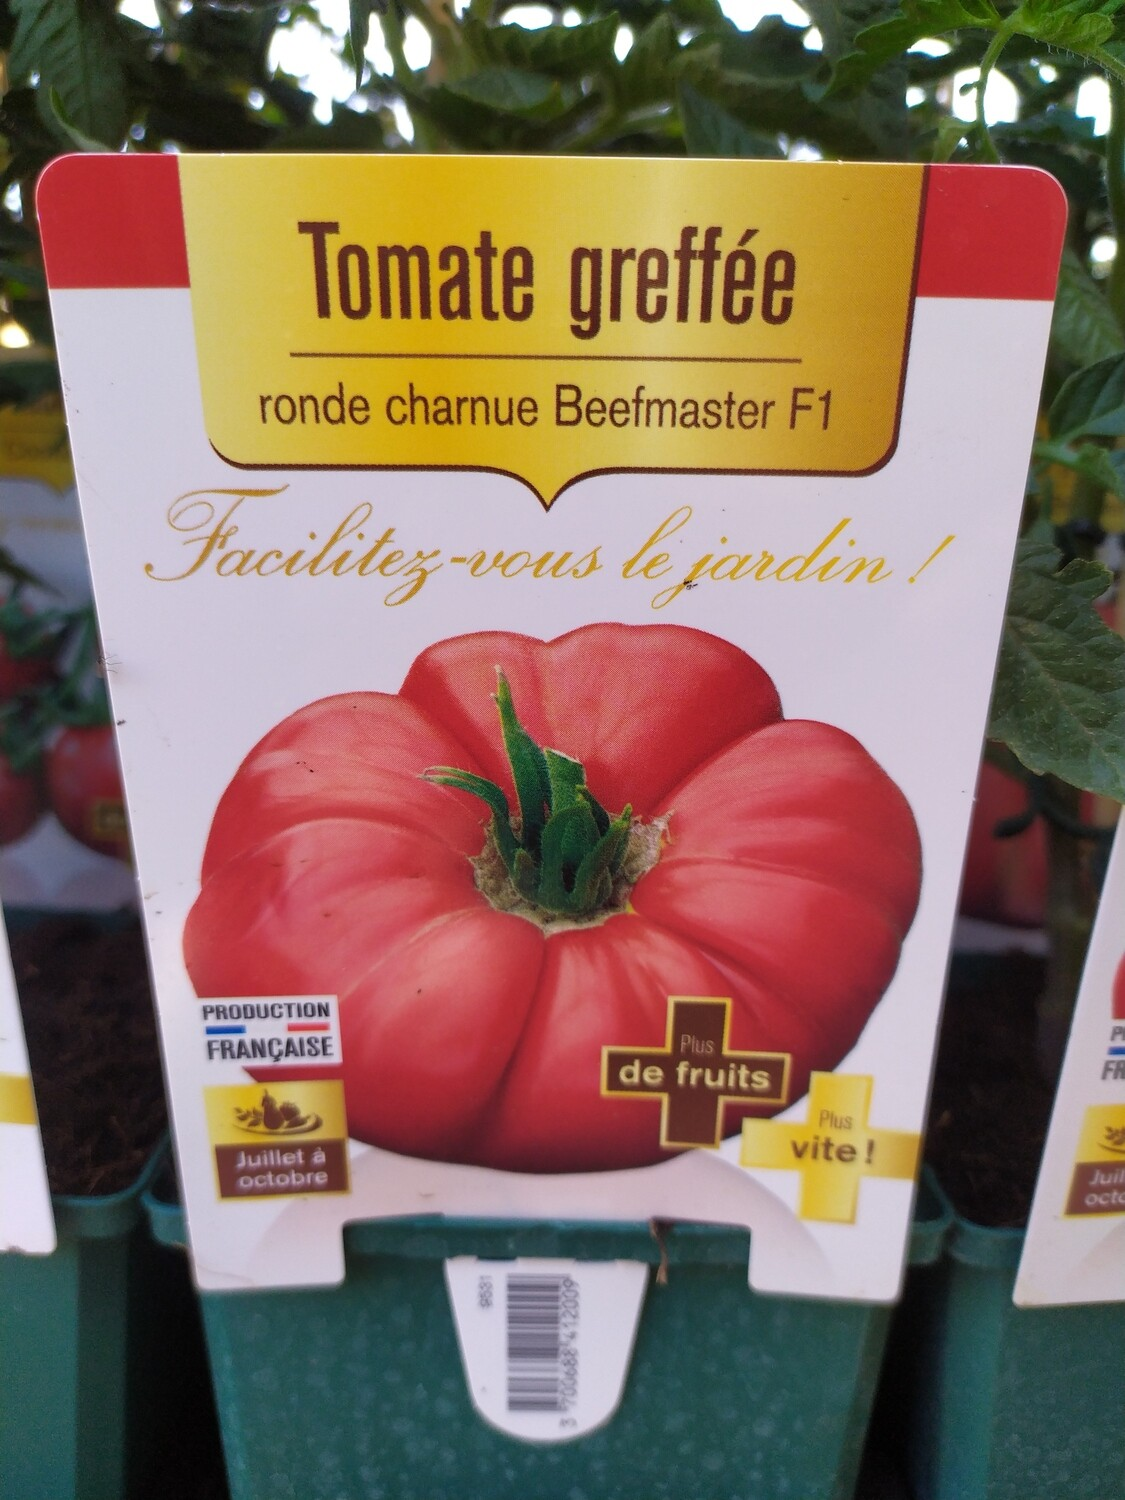 PLANT DE TOMATES GREFFE 'RONDE CHARNUE BEEFMASTER'